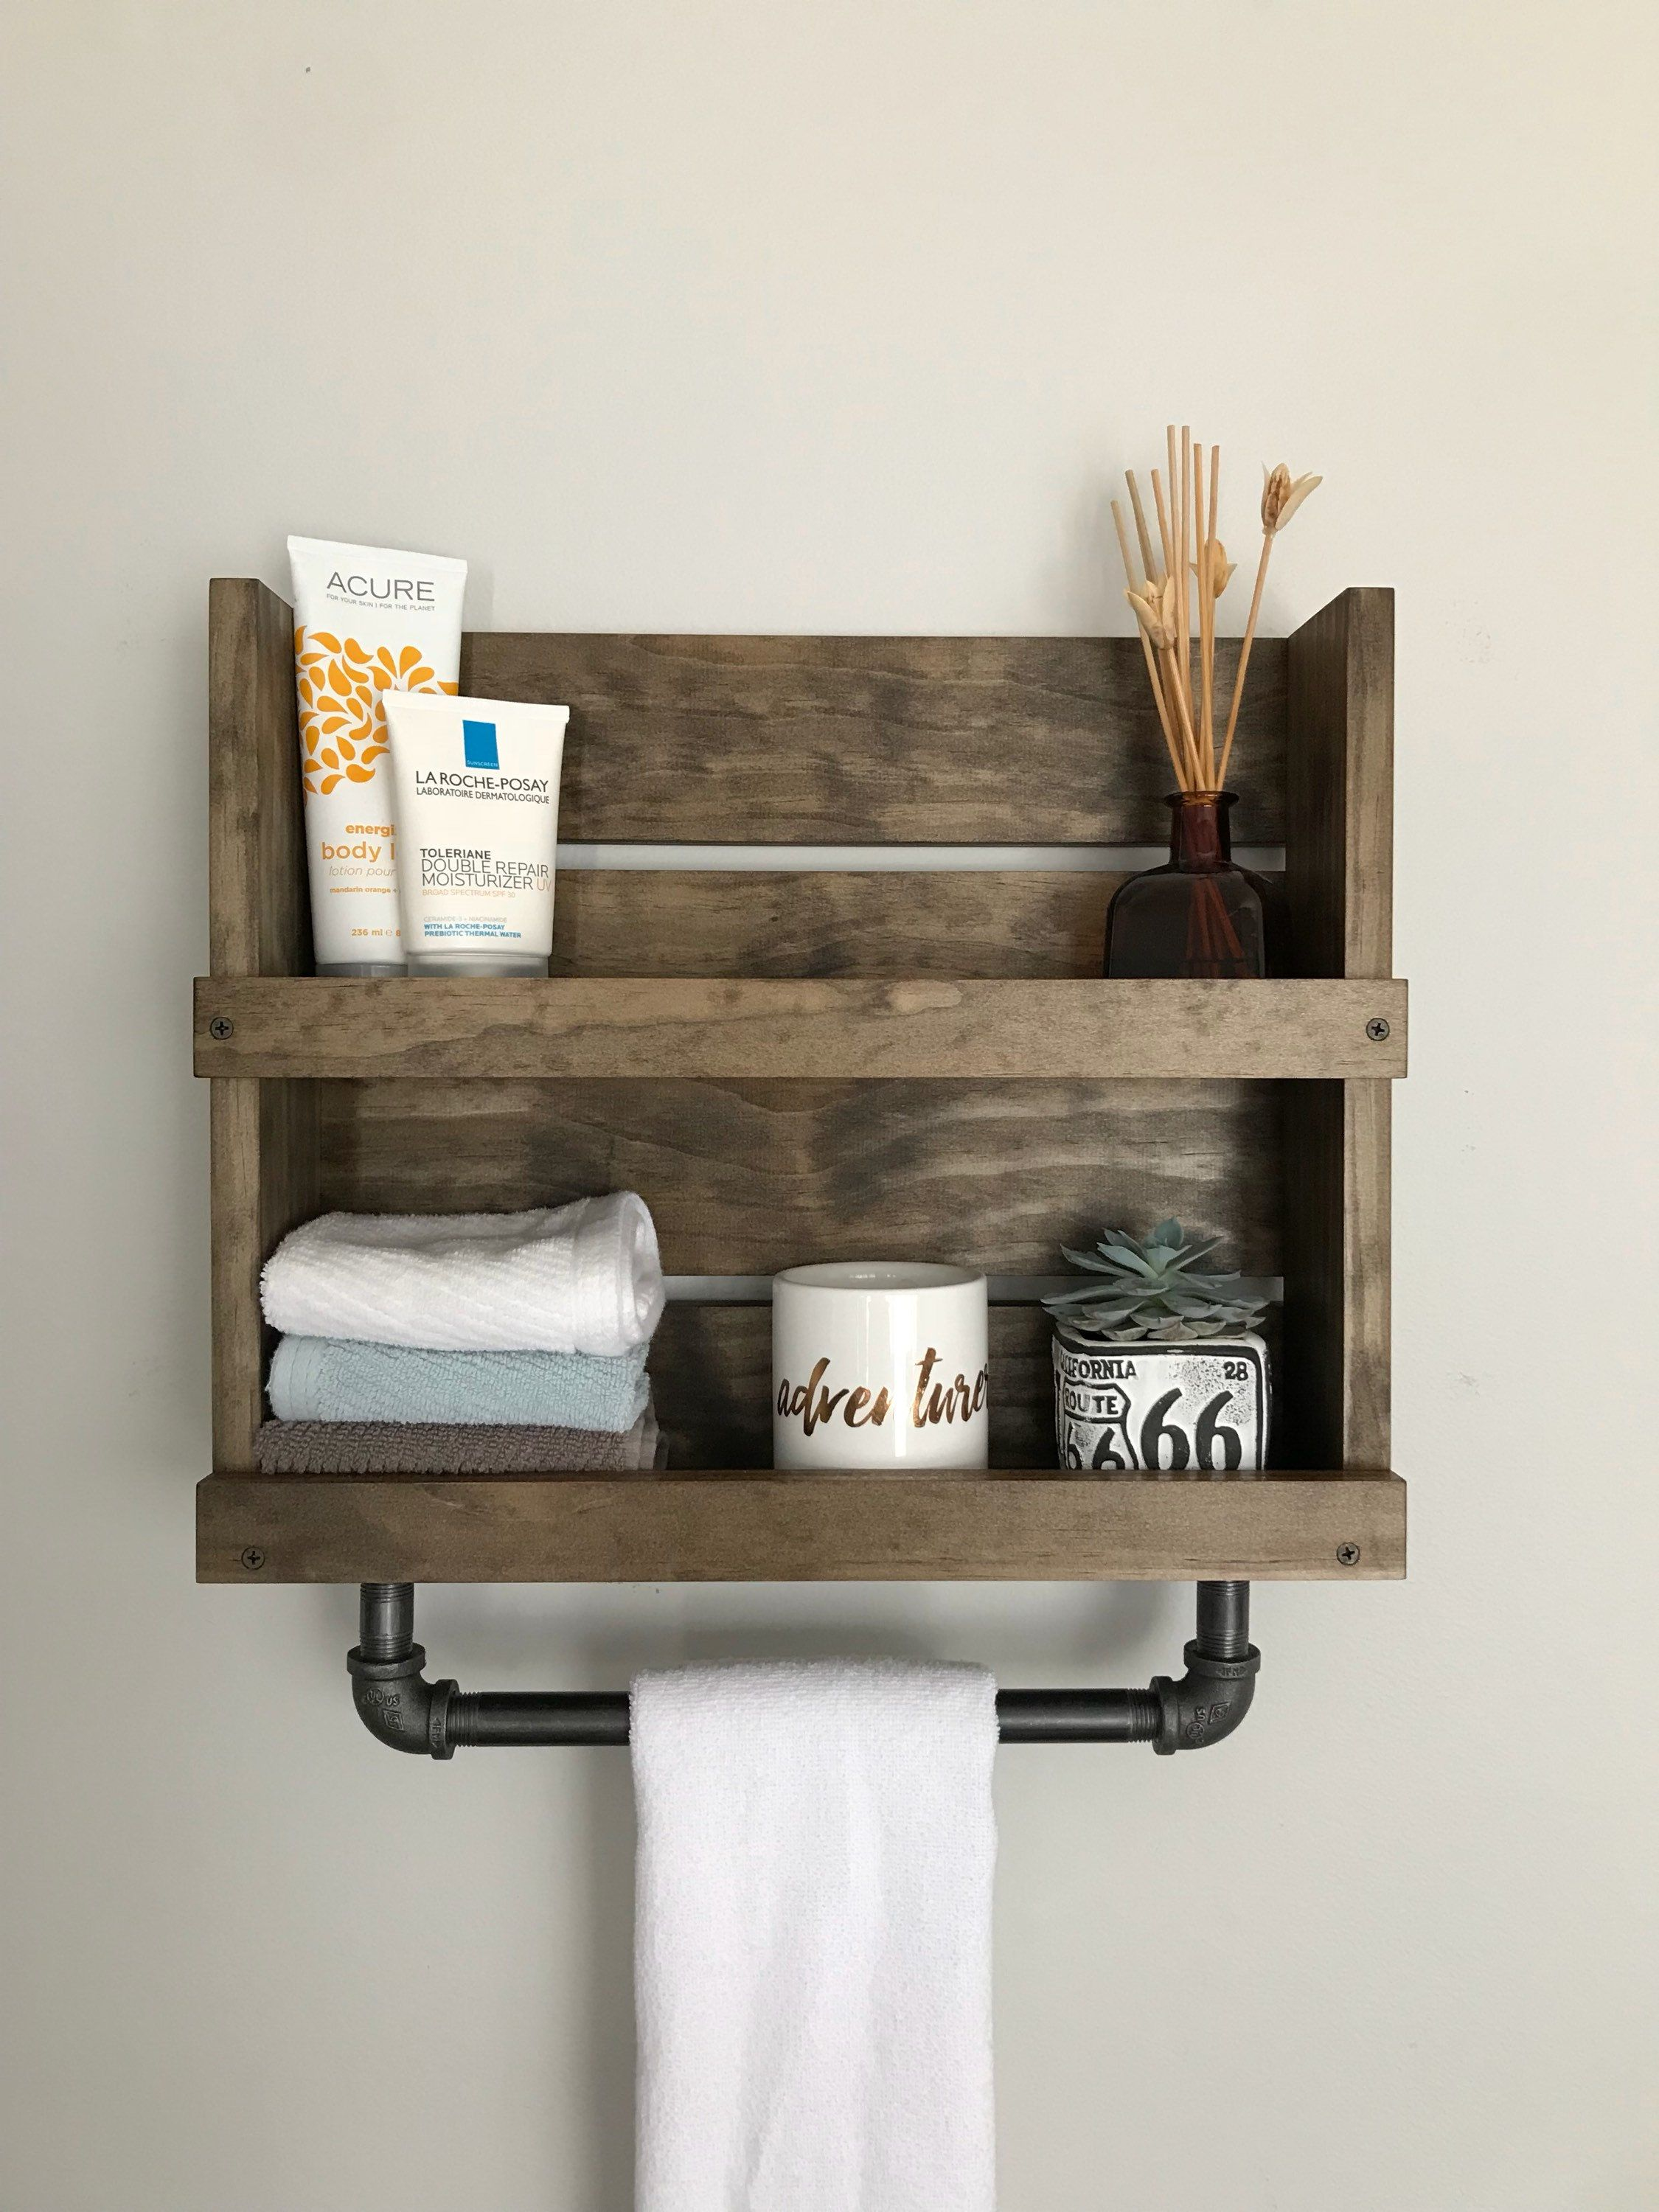 Shelf With Towel Bar Modern Rustic Industrial Bathroom Industrial Storage Wall Mount Quality Pine In 2020 Bathroom Wood Shelves Bathroom Wall Shelves Barn House Decor